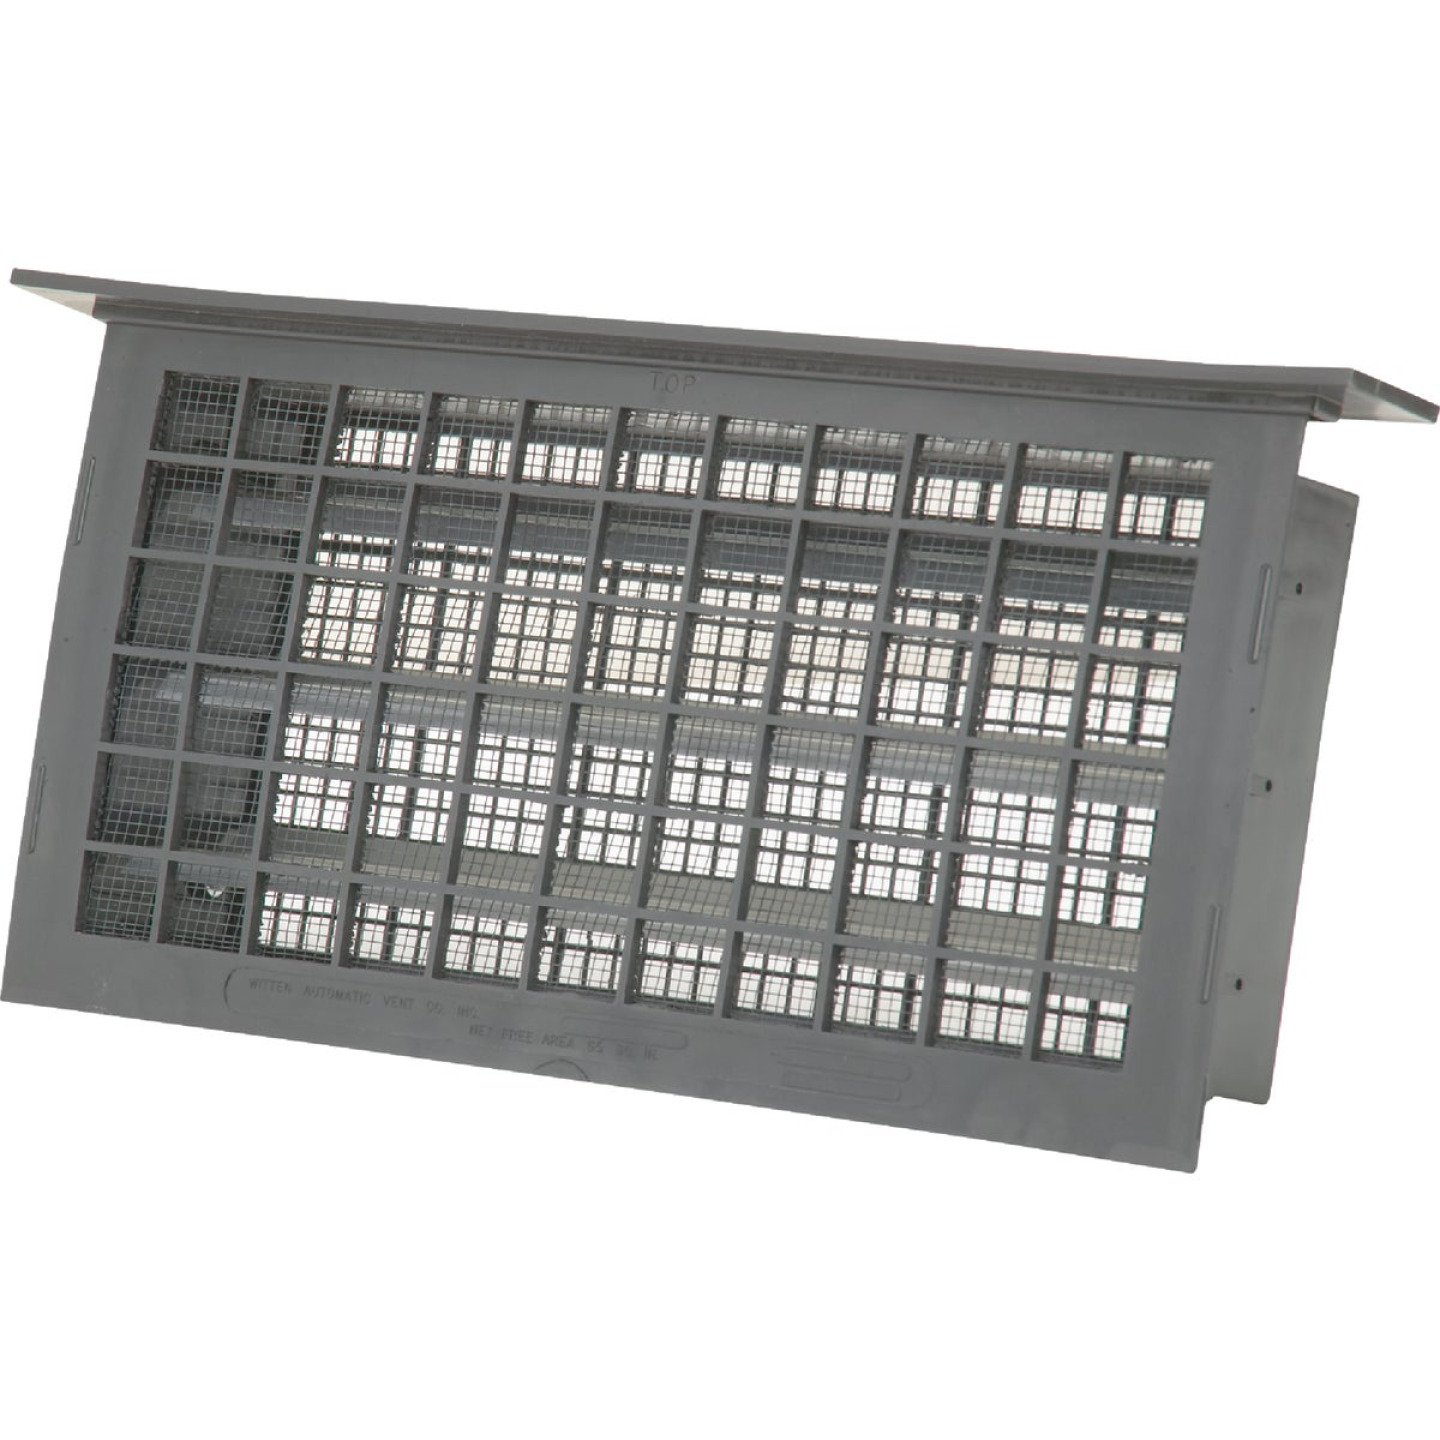 Witten 8 In. x 16 In. Gray Automatic Foundation Ventilator with Lintel Image 1